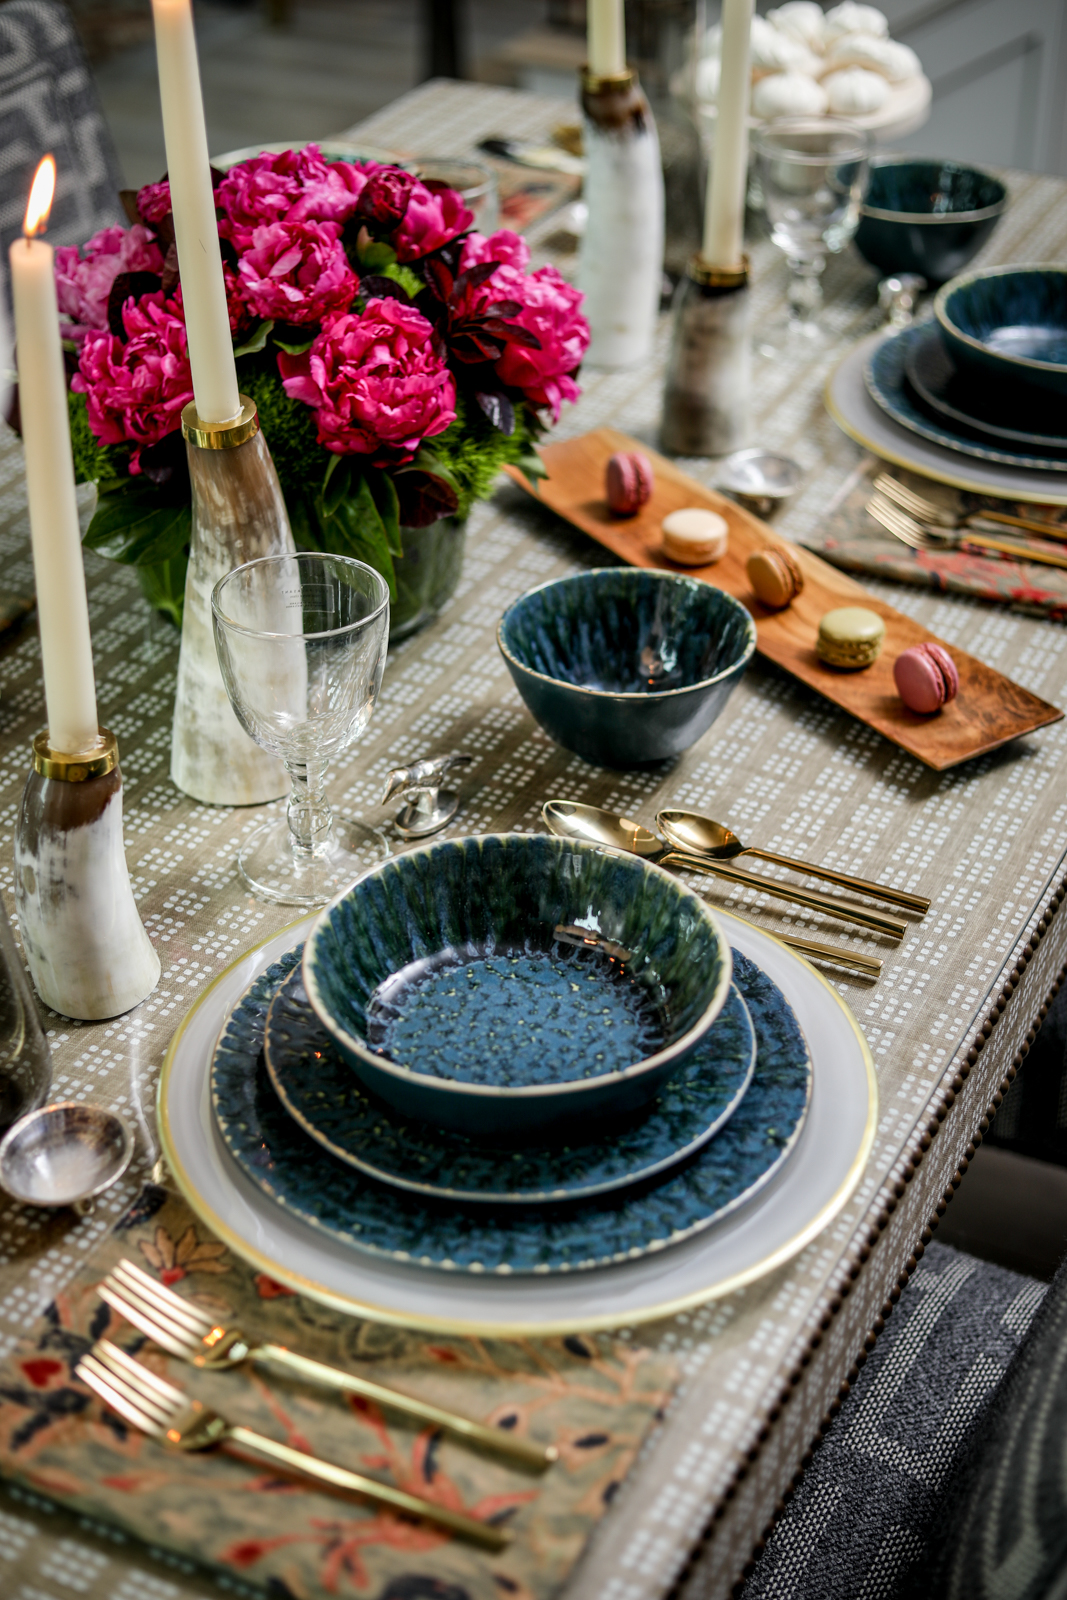 Tablescape-Modern-Textiles-Floral-Green-Gold-Candles.jpg